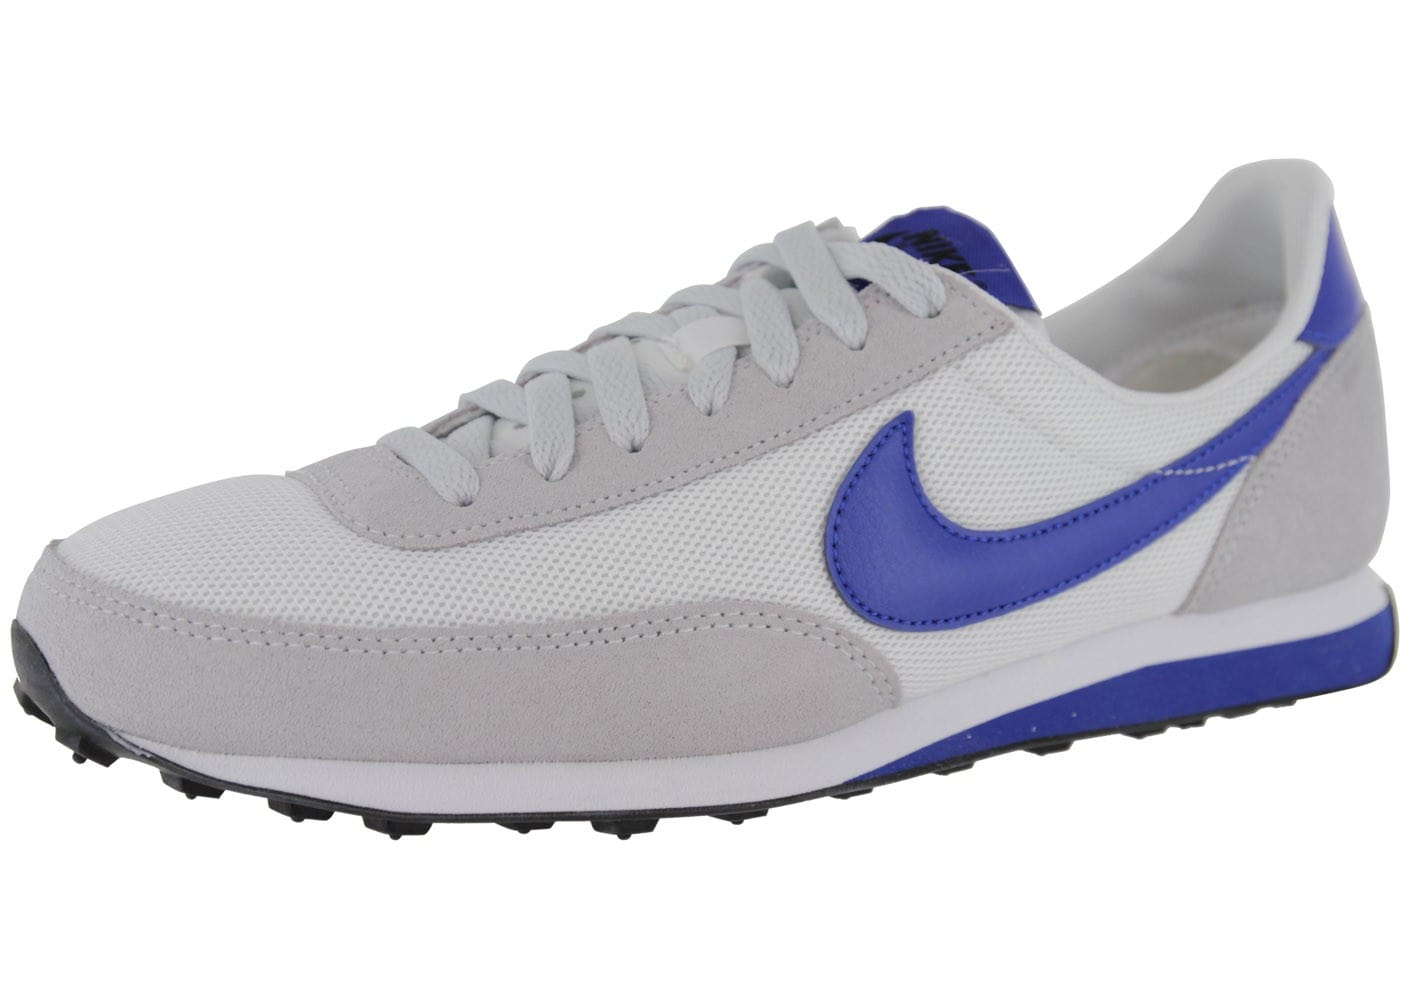 Nike Elite Si Blanche Chaussures Baskets homme Chausport